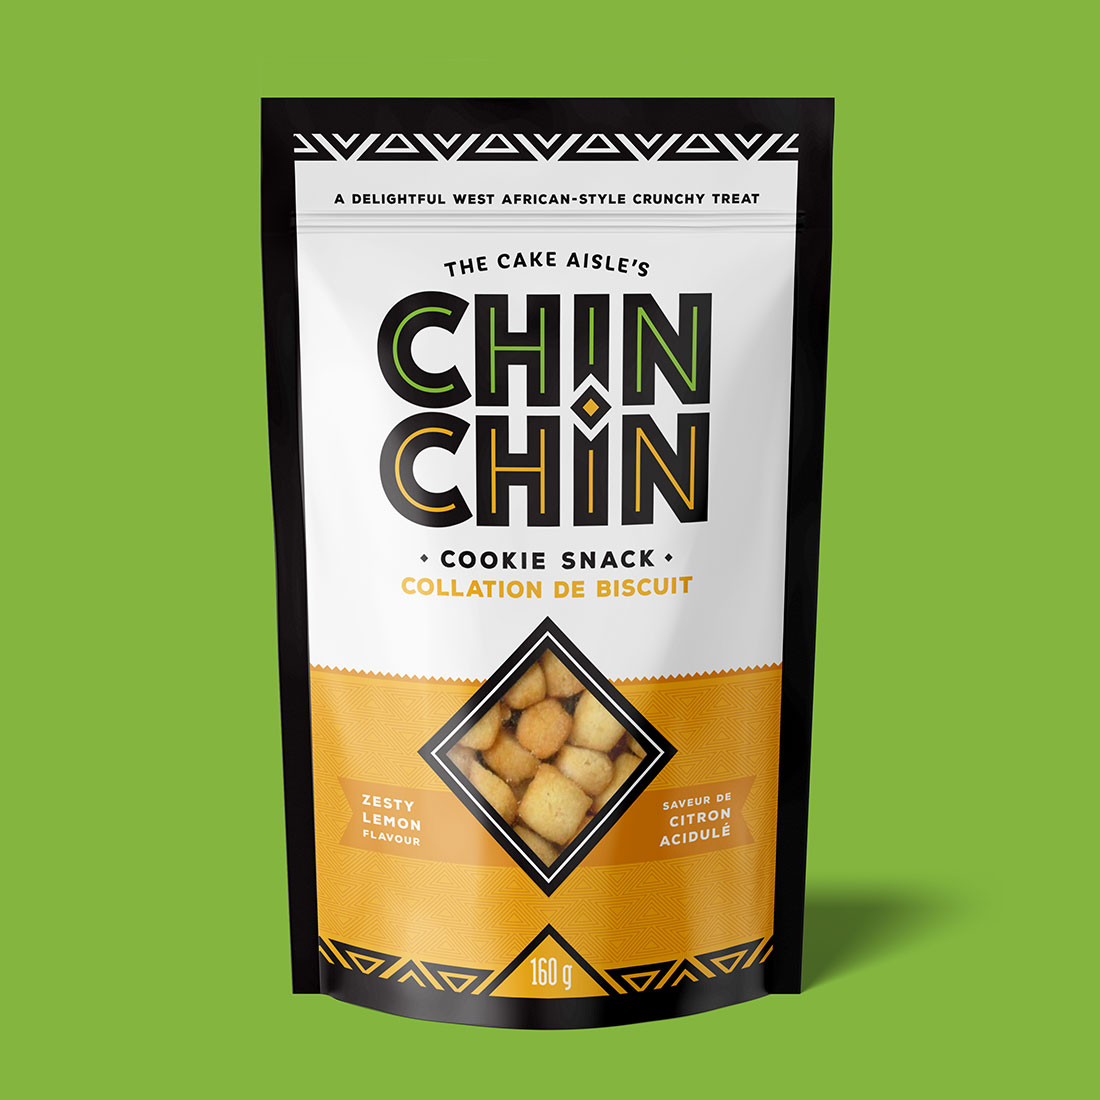 Chin Chin Lemon flavour packaging design